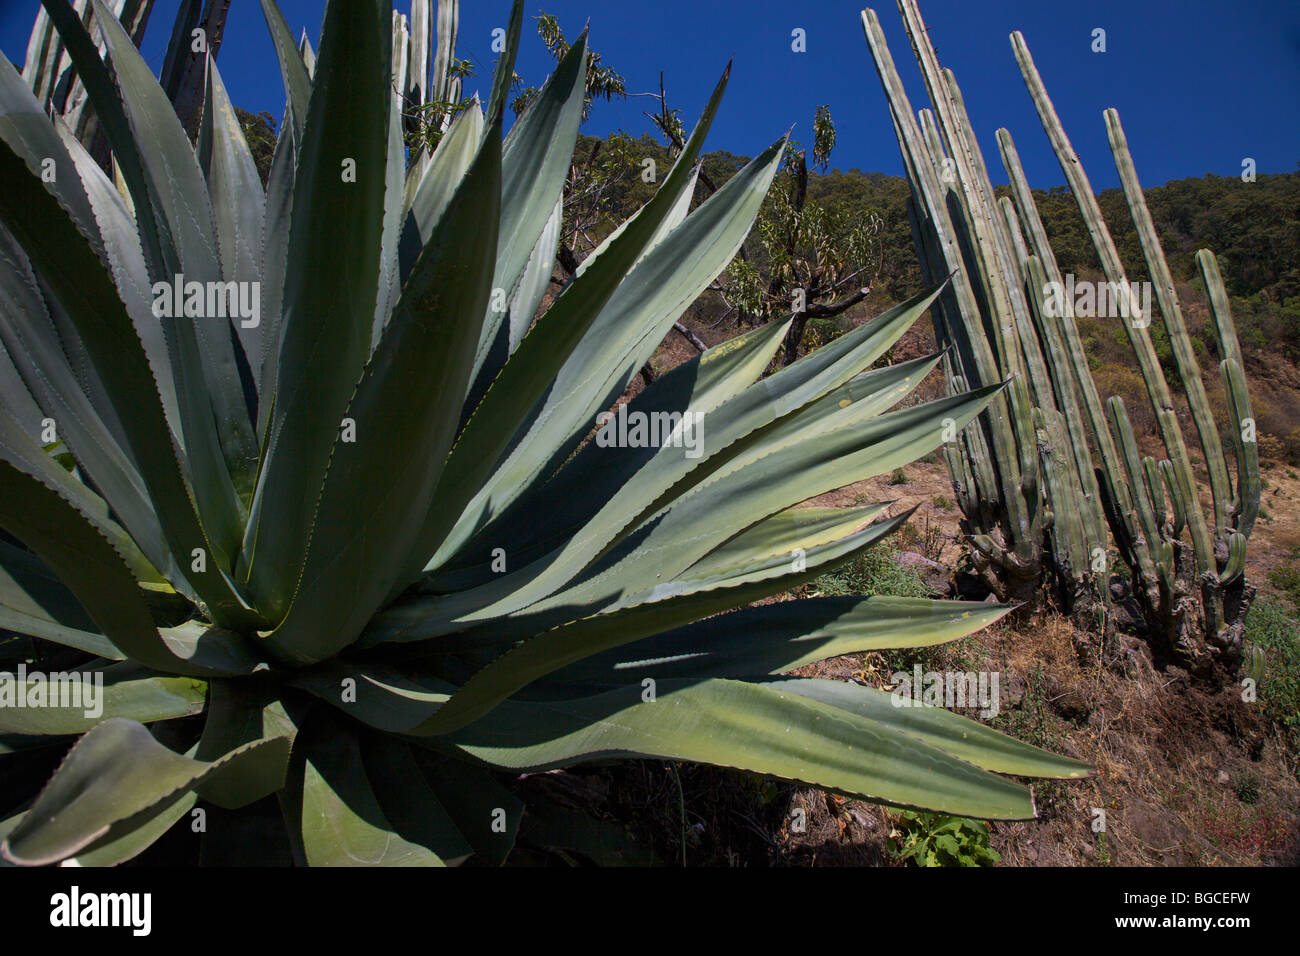 Giant century plant and cactus in the arid desert of Michoacan, Mexico. - Stock Image